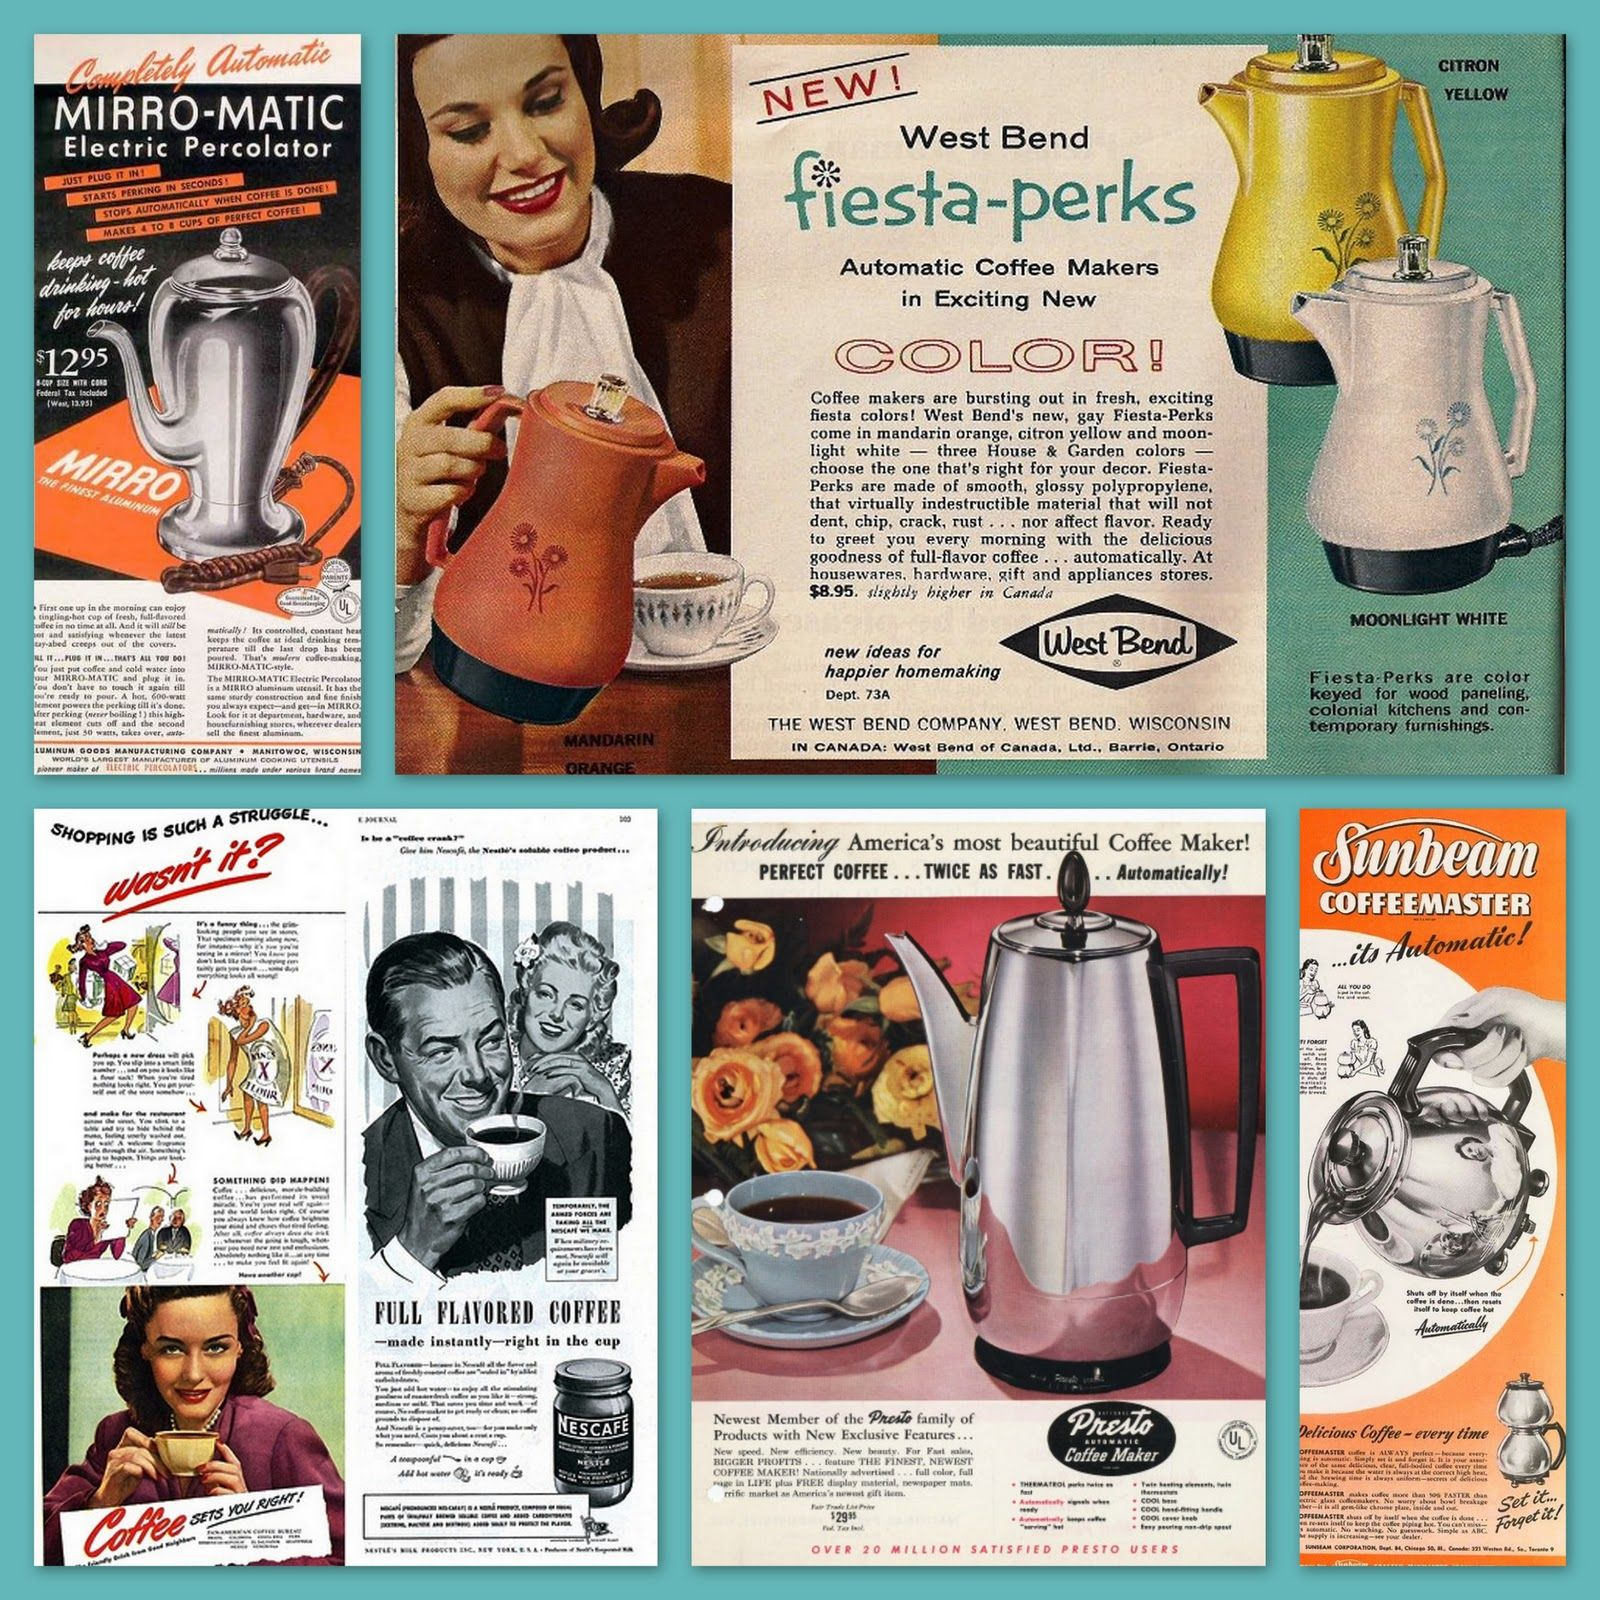 Do you remember these stylish electric coffee percolators?